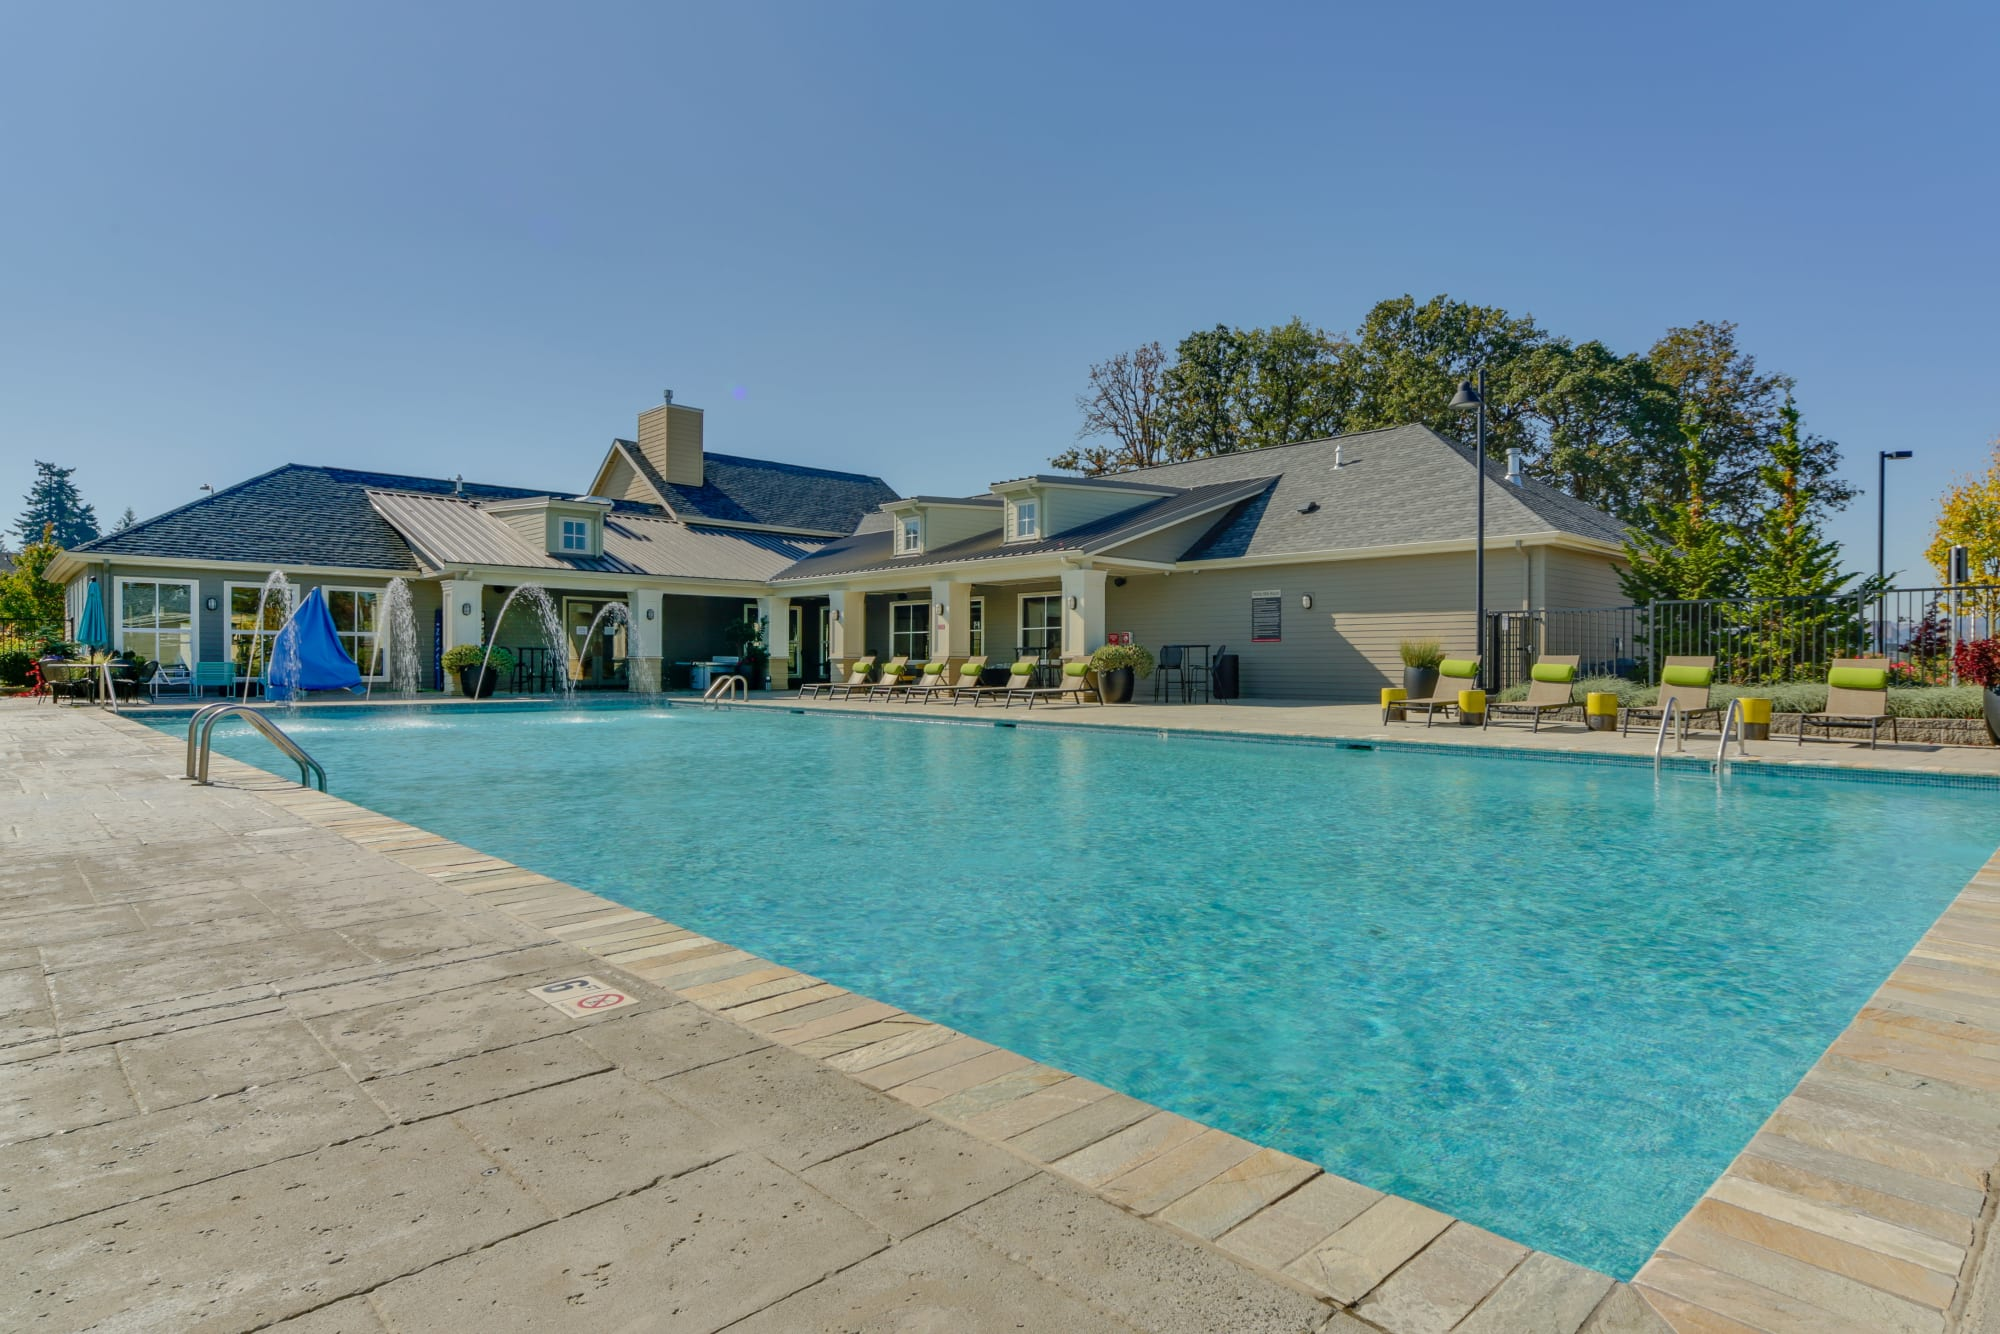 The large, sparkling swimming pool and clubhouse at Terrene at the Grove in Wilsonville, Oregon